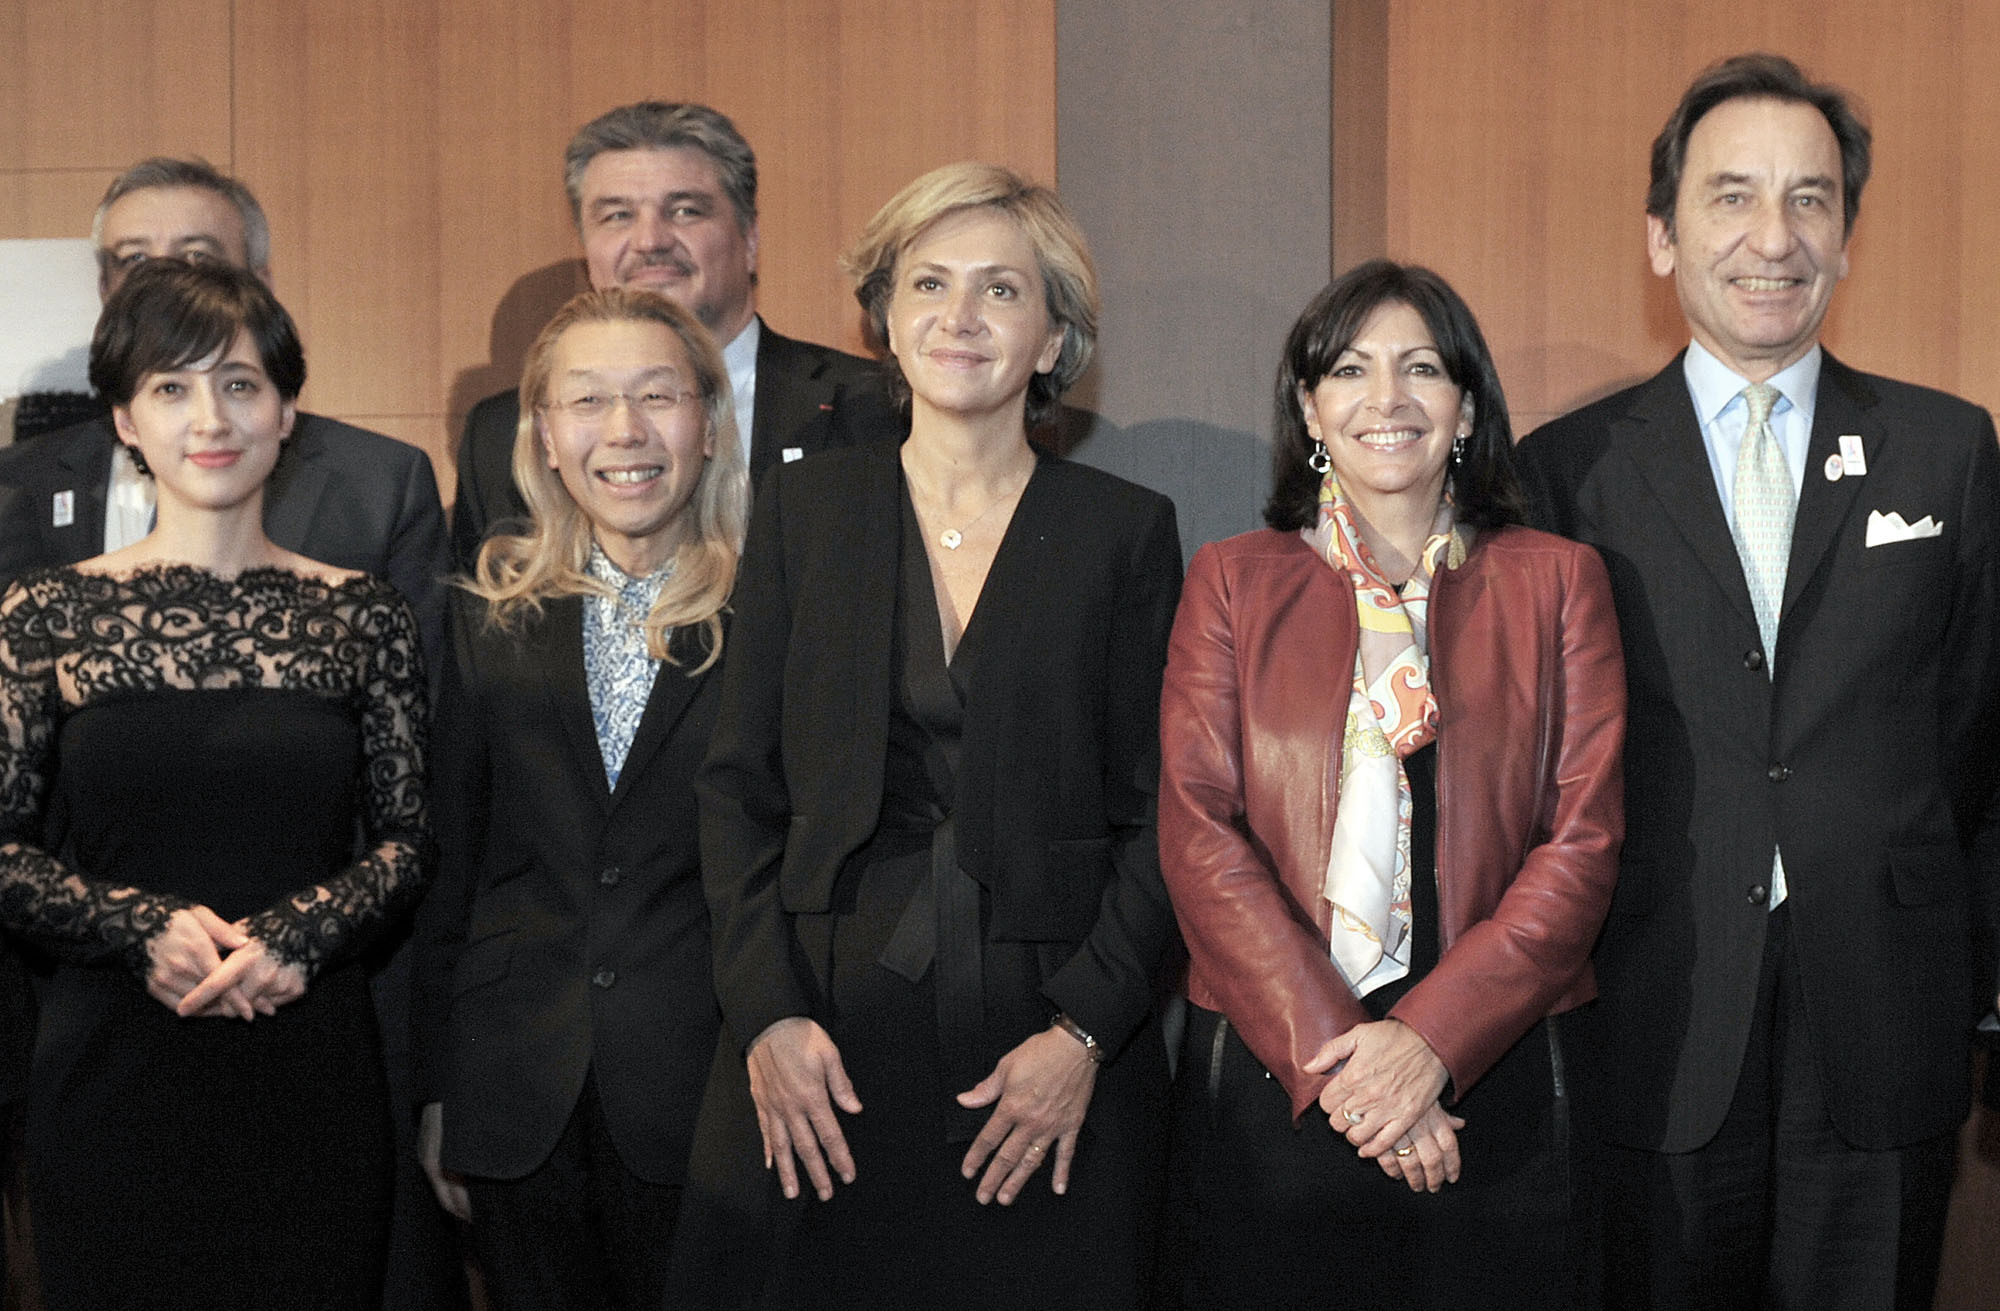 Paris Mayor Anne Hidalgo (second from right) is joined by President of the Regional Council of Ile-de-France Valerie Pecresse (third from right); (from left) 2008 France sightseeing goodwill ambassadors TV announcer Christel Takigawa and flower arranger Shogo Kariyazaki; and French Ambassador Thierry Dana at a press conference held to invite Japanese tourists to France, at the Ambassador's residence on Feb. 29. | YOSHIAKI MIURA